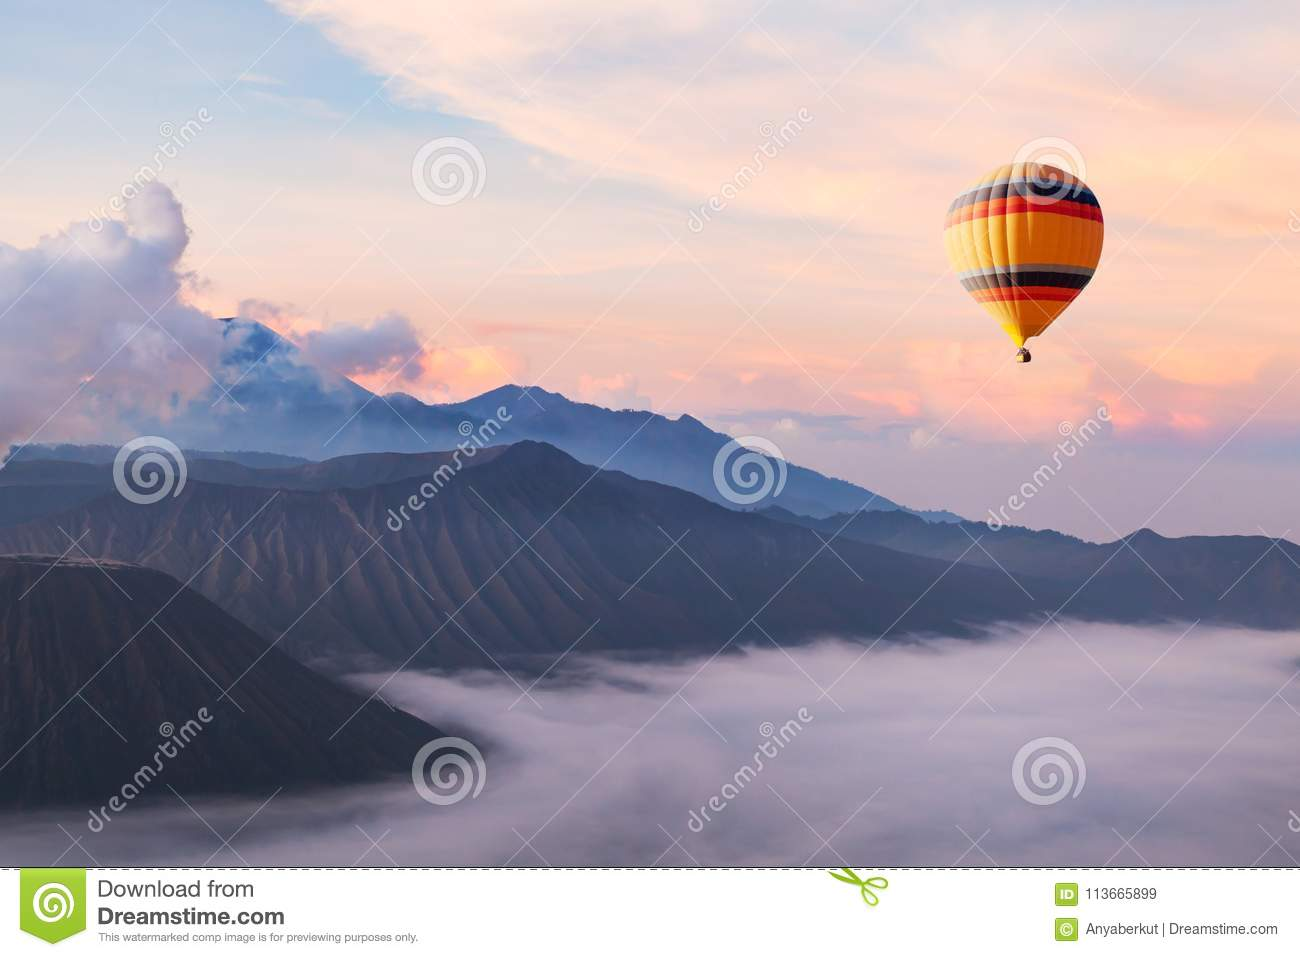 Beautiful inspirational landscape with hot air balloon flying in the sky, travel